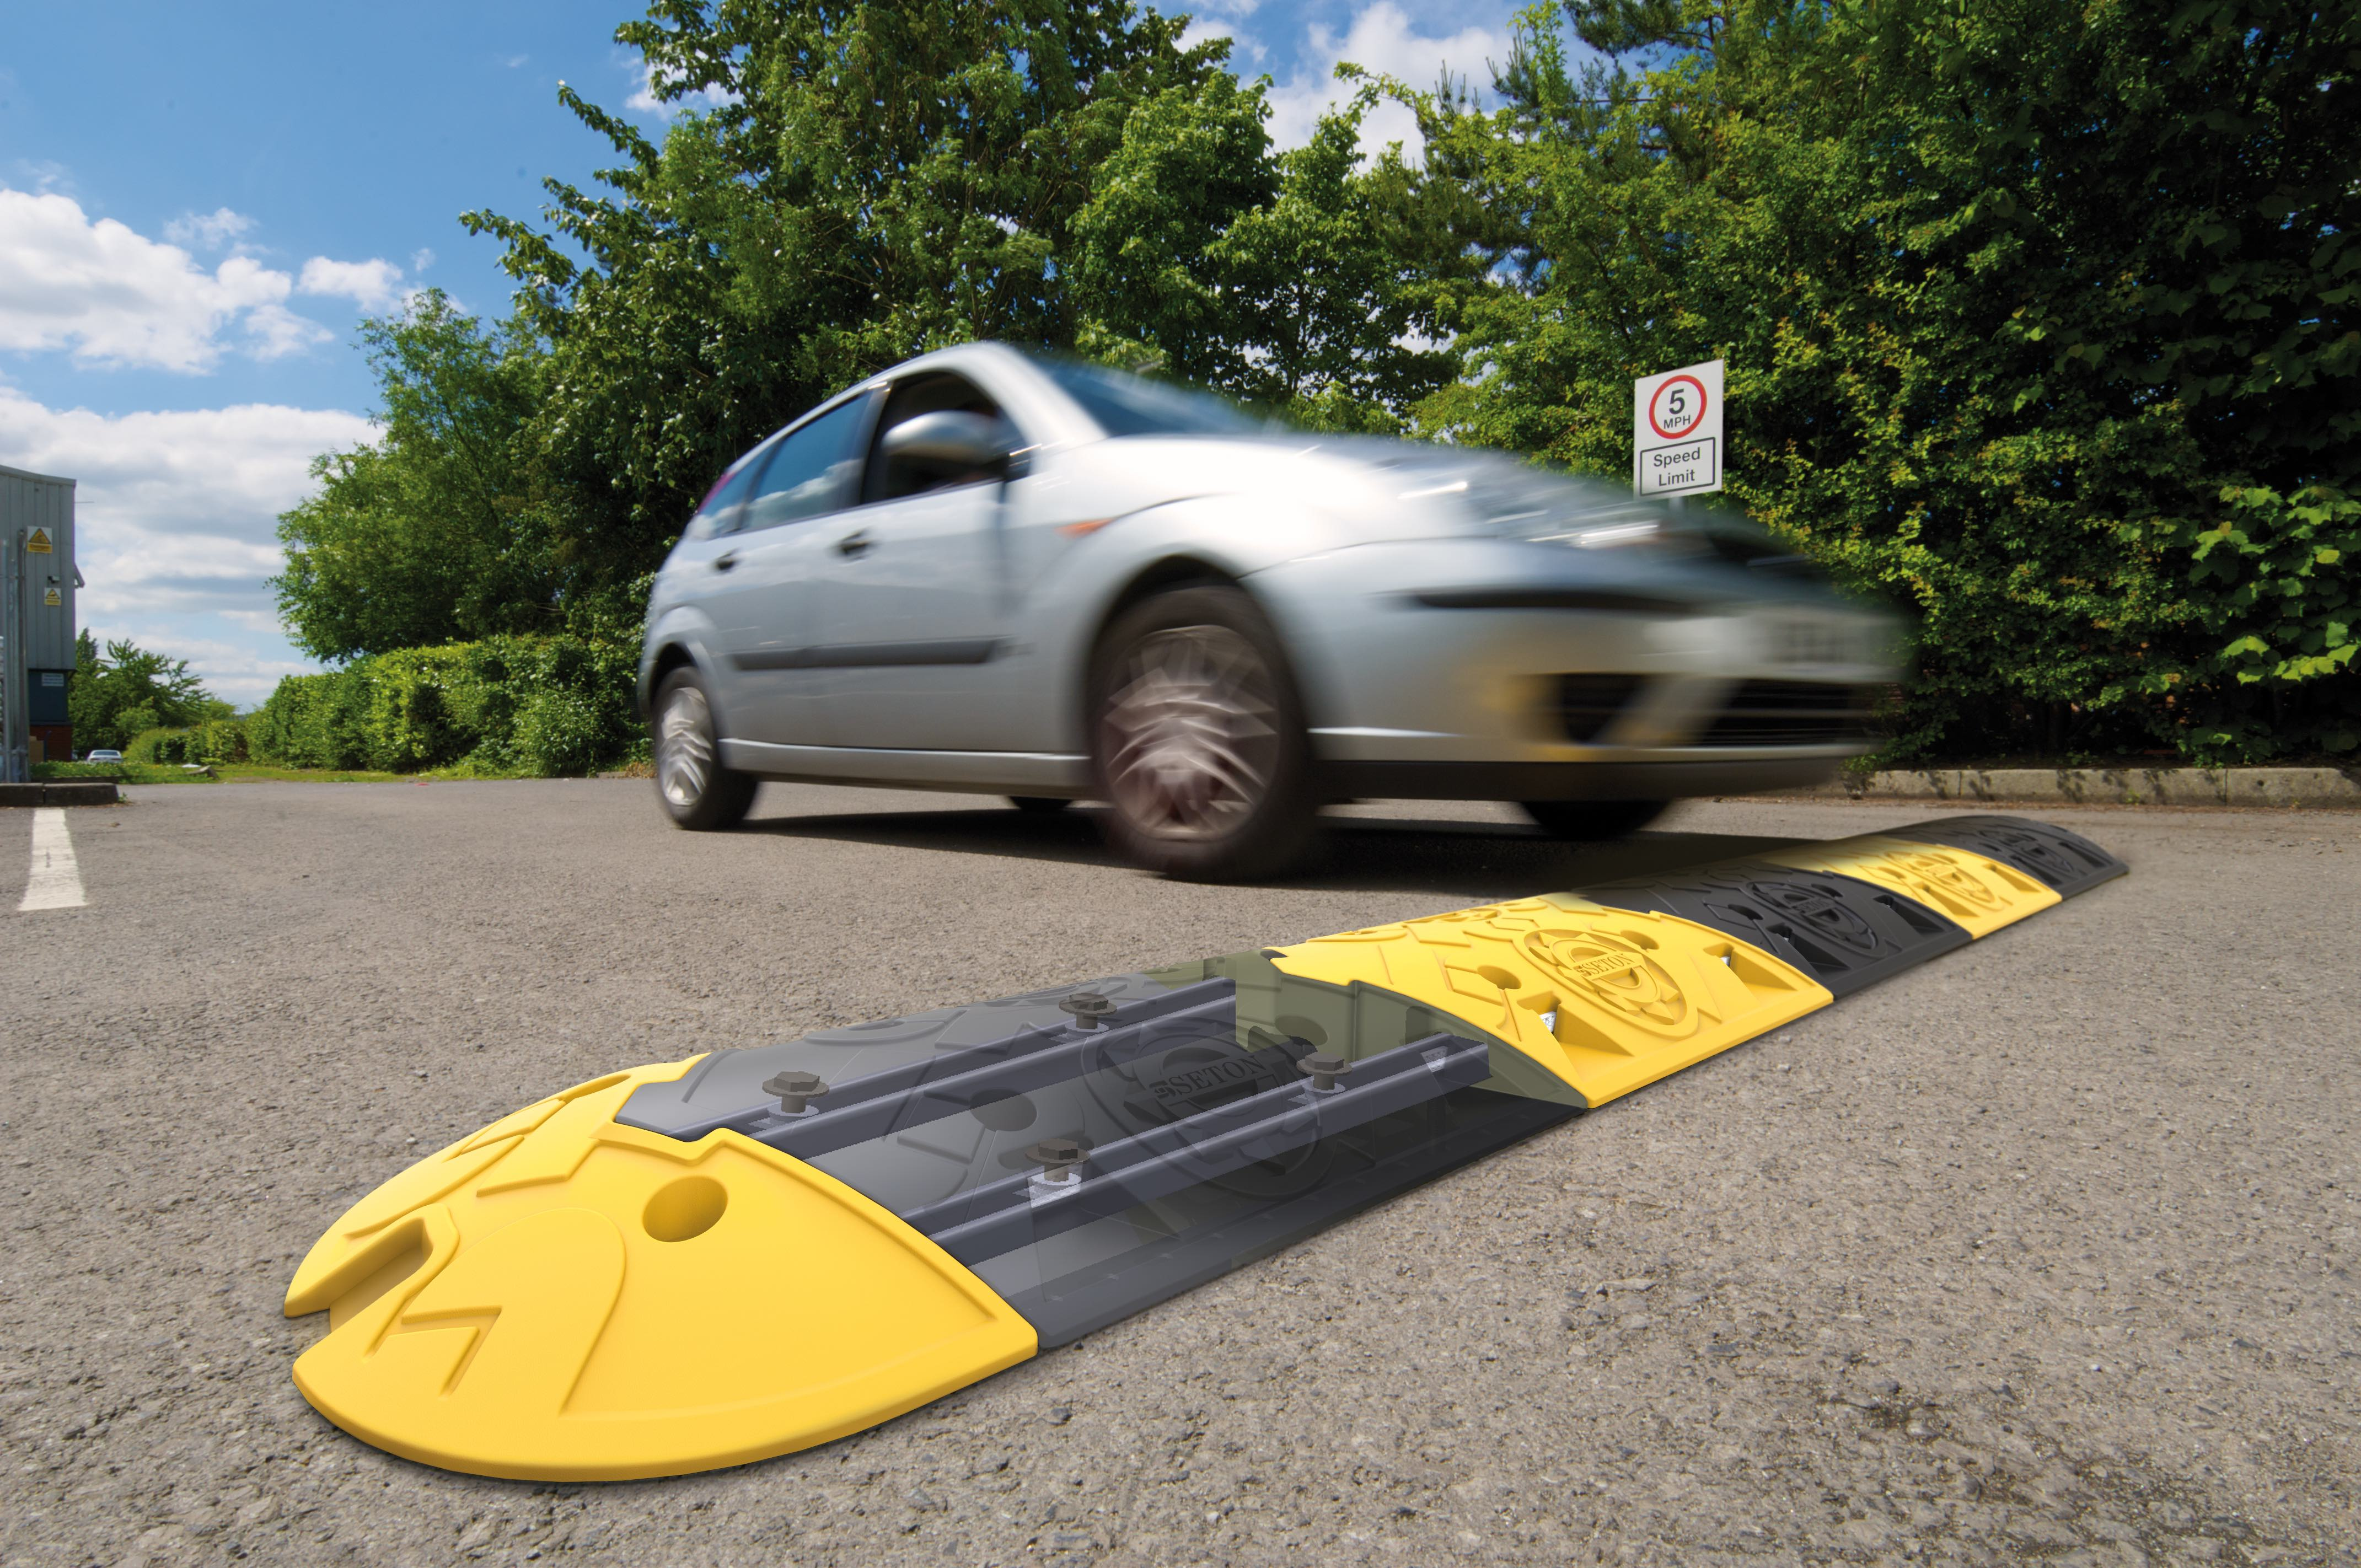 Racing ahead – groundbreaking new design revolutionises traffic management - Global leader in health and safety solutions unveils innovative speed bump